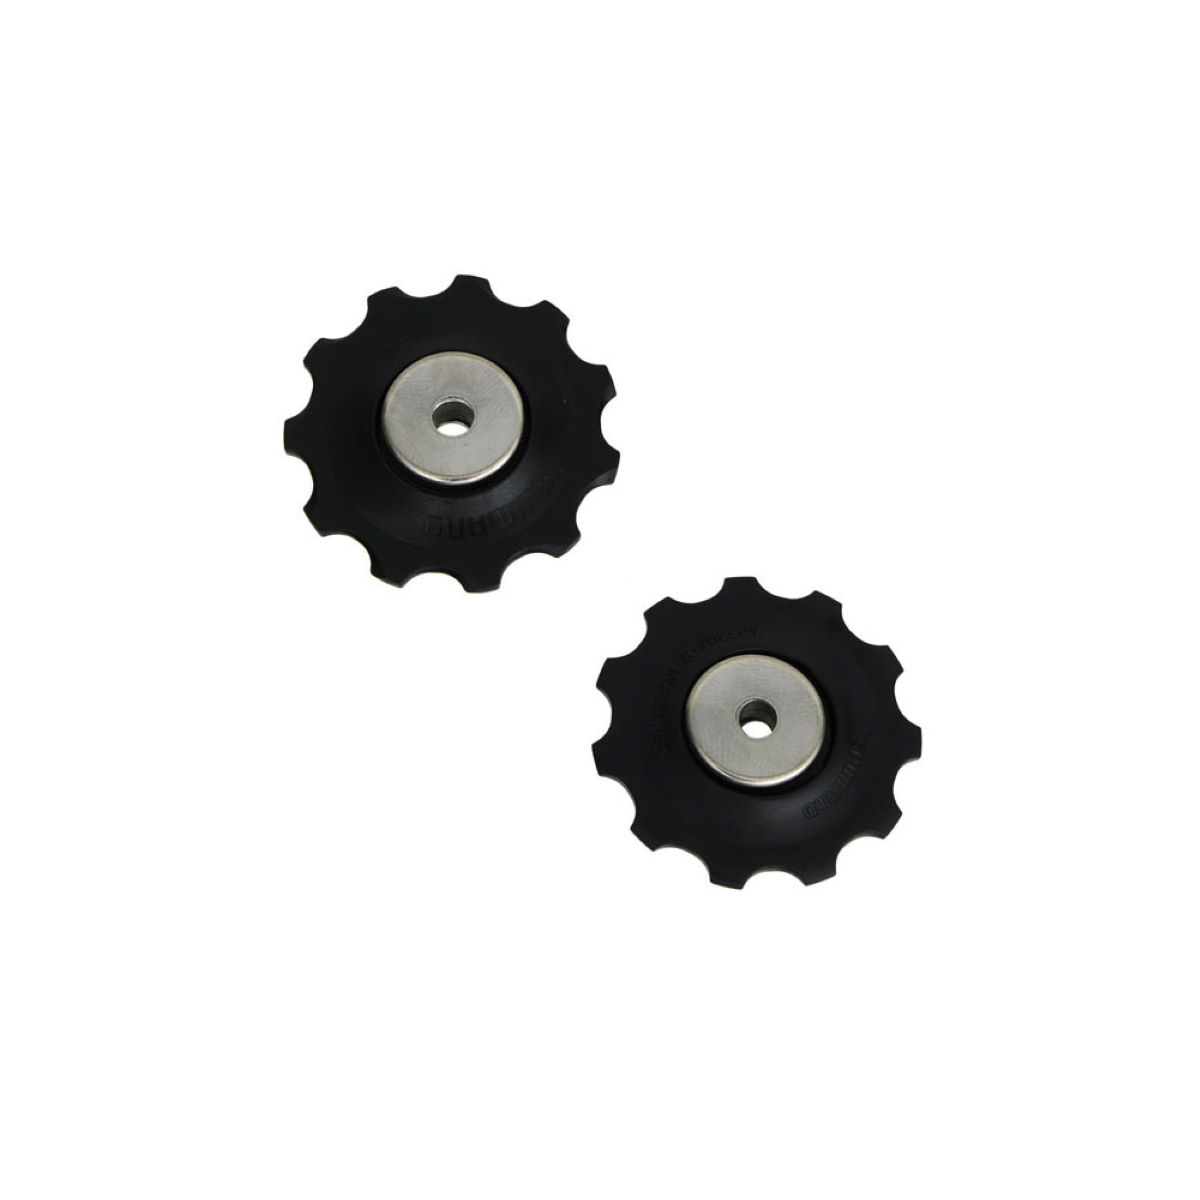 Shimano Ultegra RD6700 Tension Guide Pulley Kit